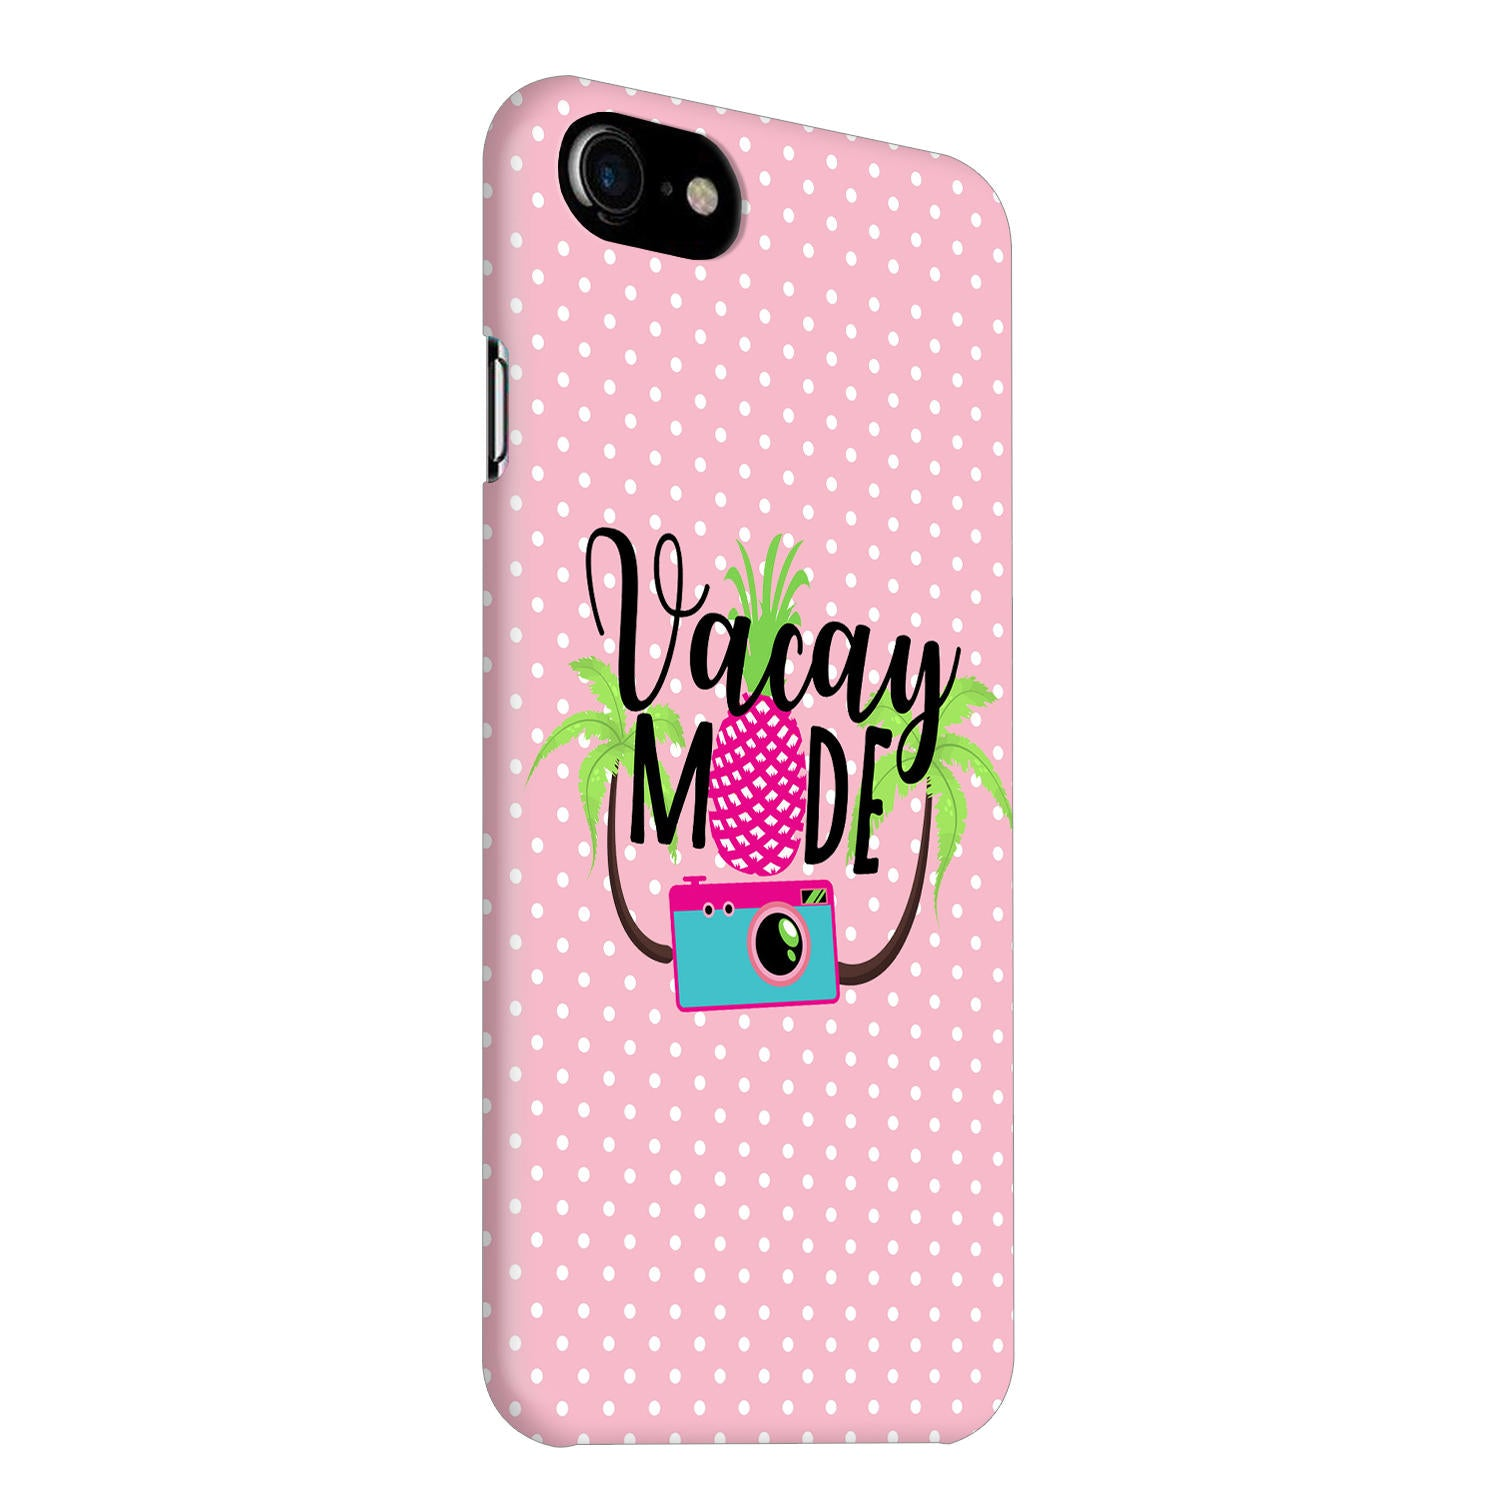 Vacay Mode With Cute White Dots Typography iPhone 7 Mobile Cover Case - MADANYU